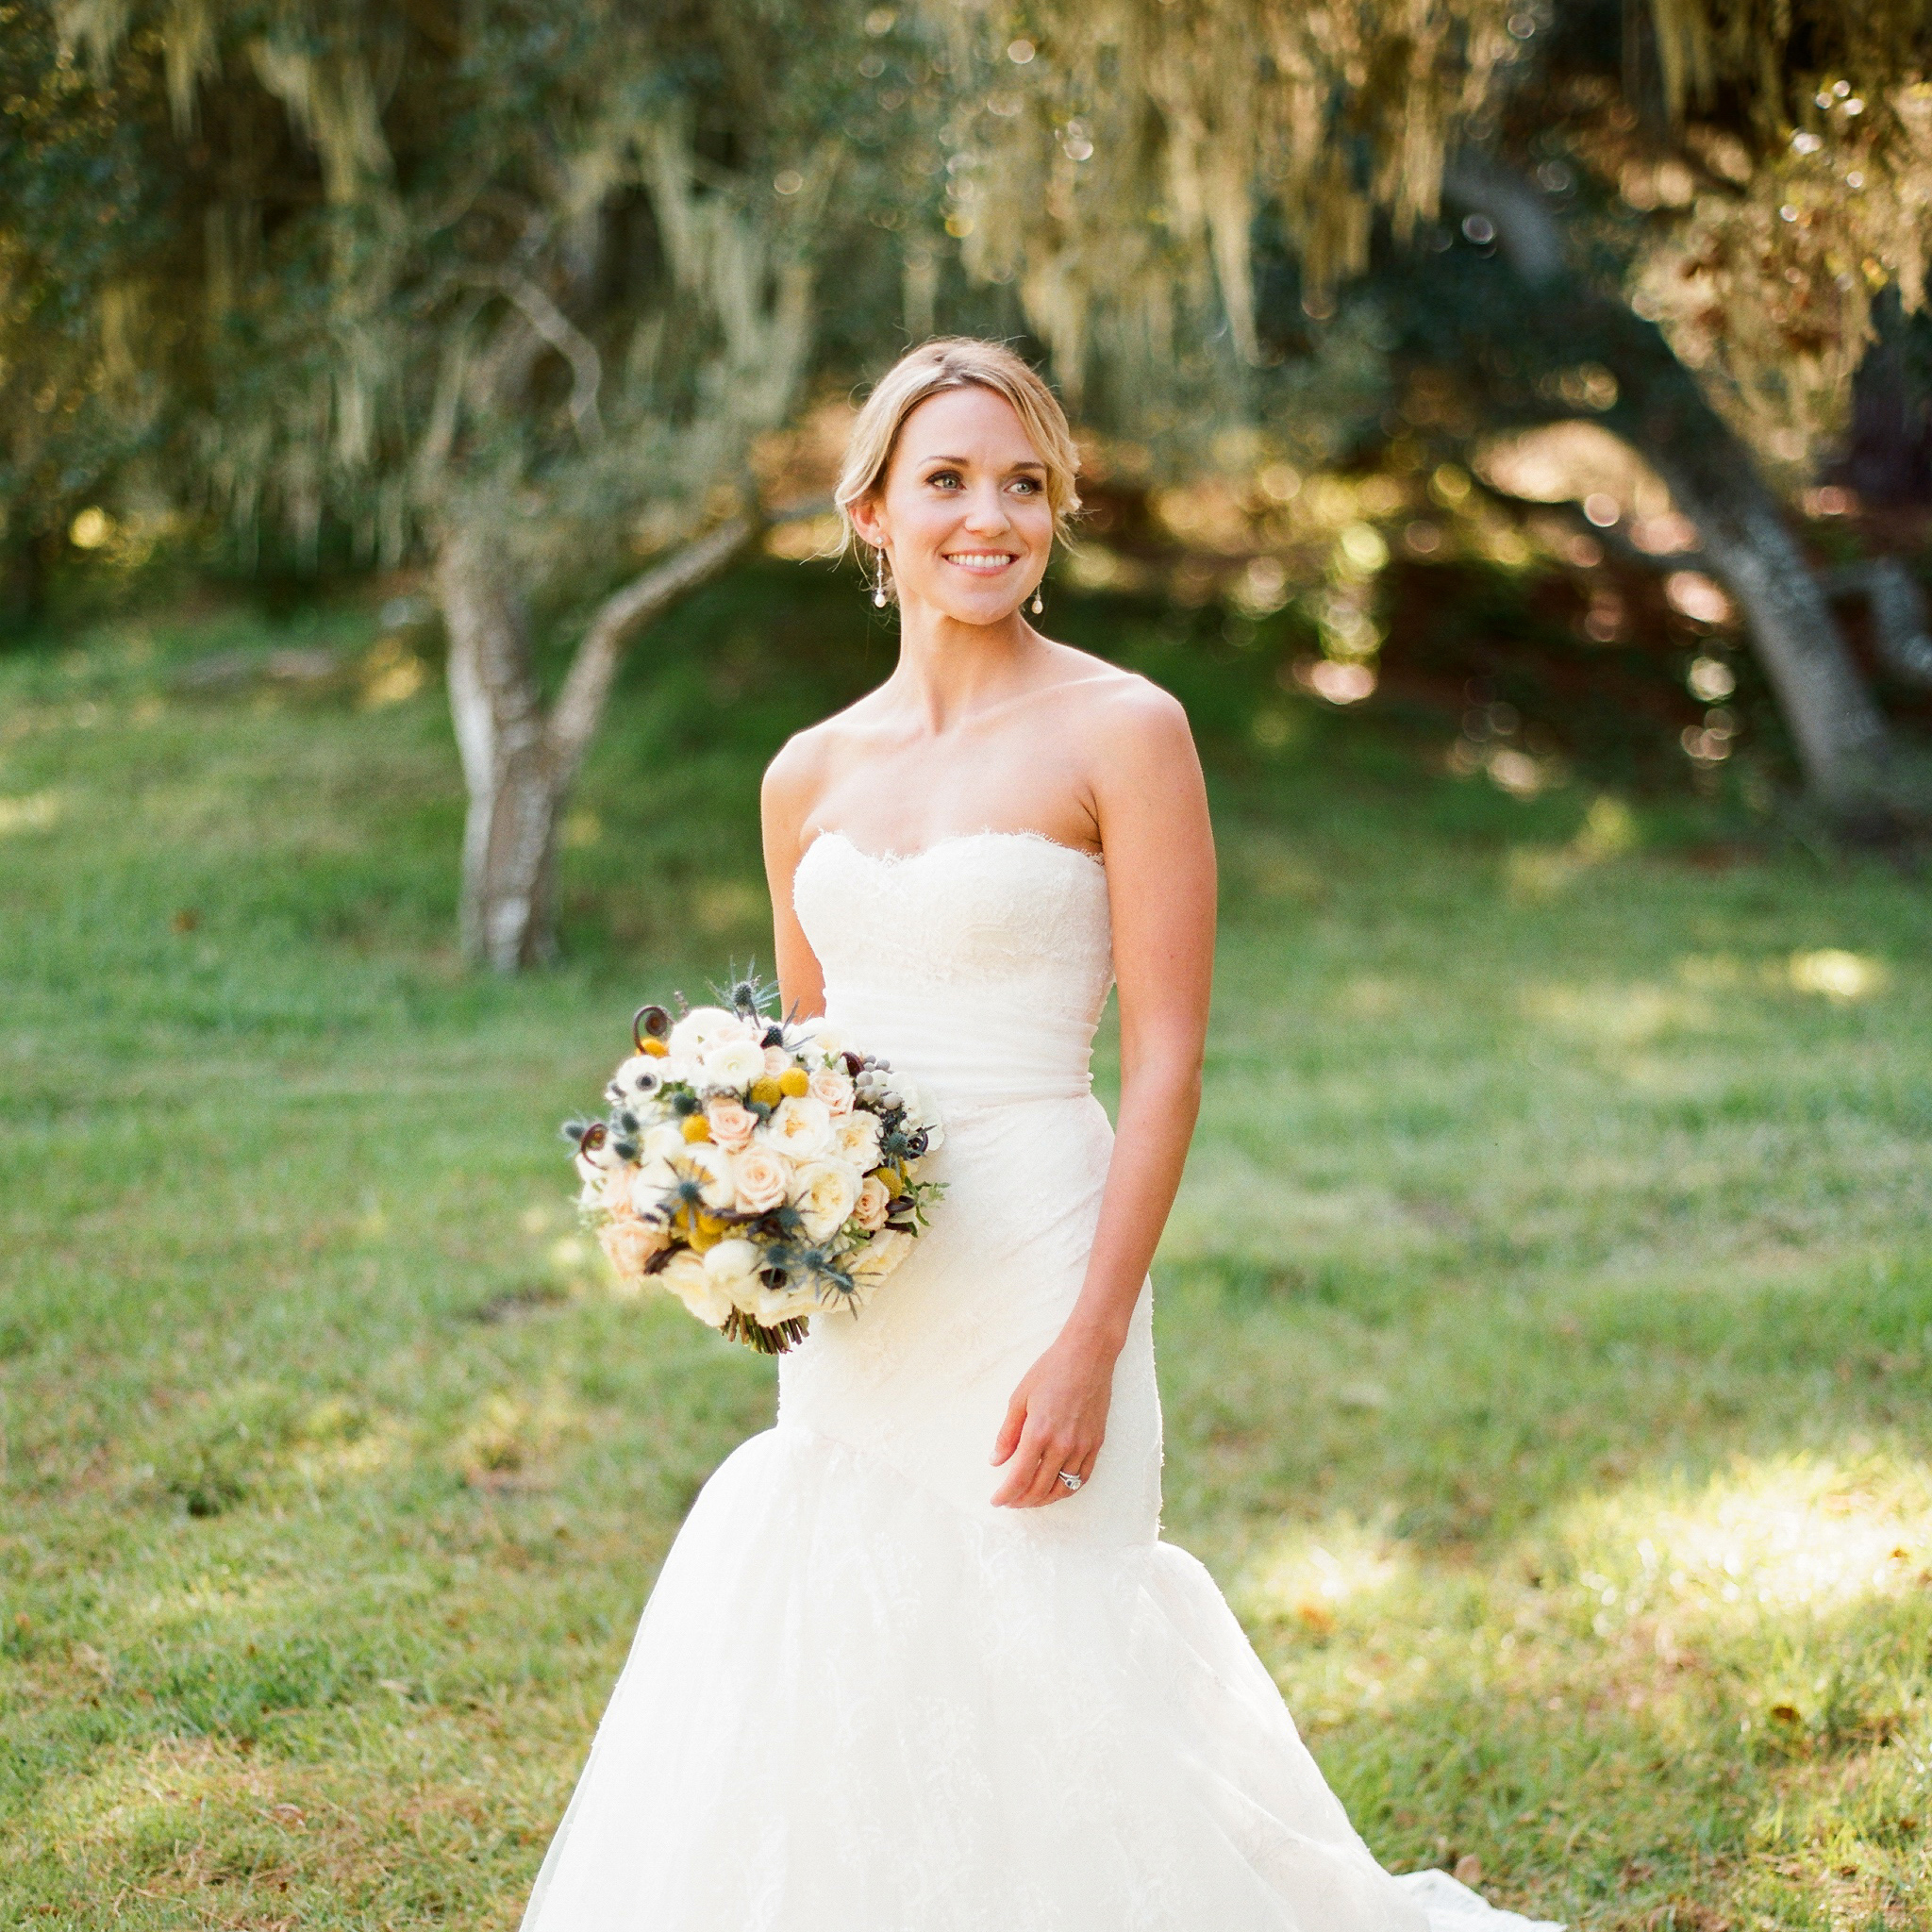 Kathleen & Rob   Venue  | Monterey Peninsula Country Club   Location  | Monterey, California   Photographer  | Love Is A Bird   Planner  | Allison Weddings